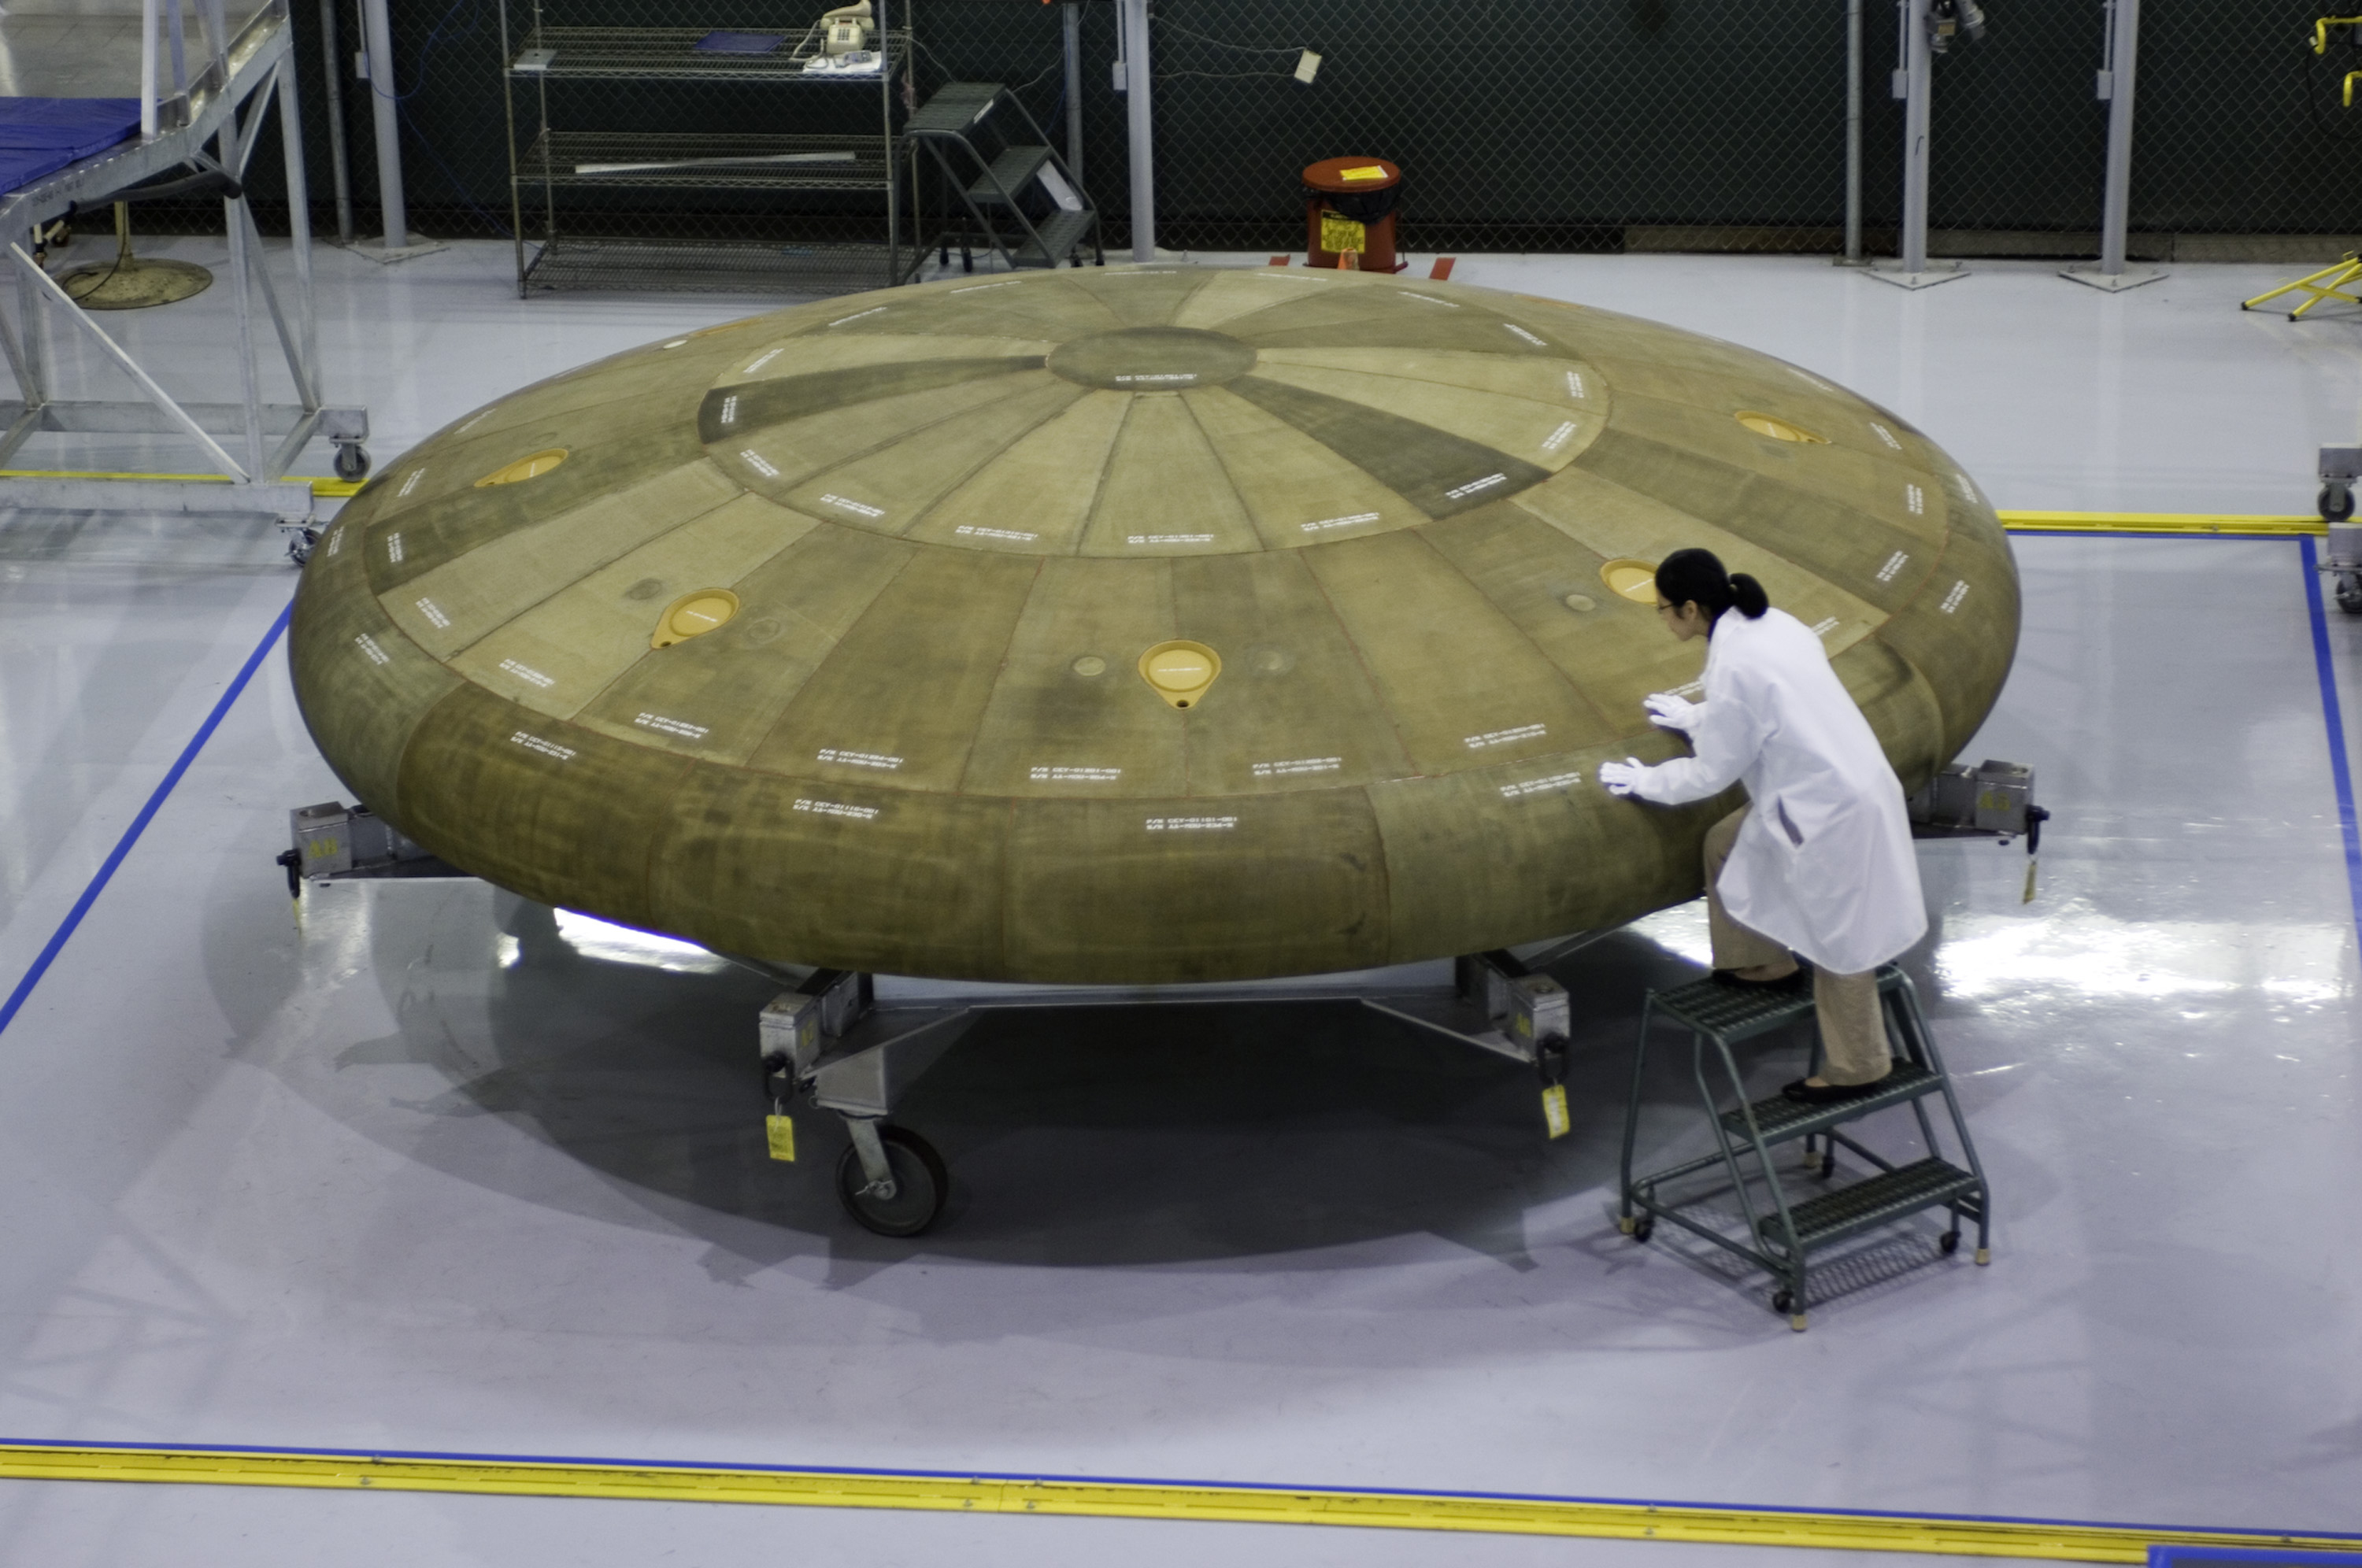 nasa orion heat shield - photo #4